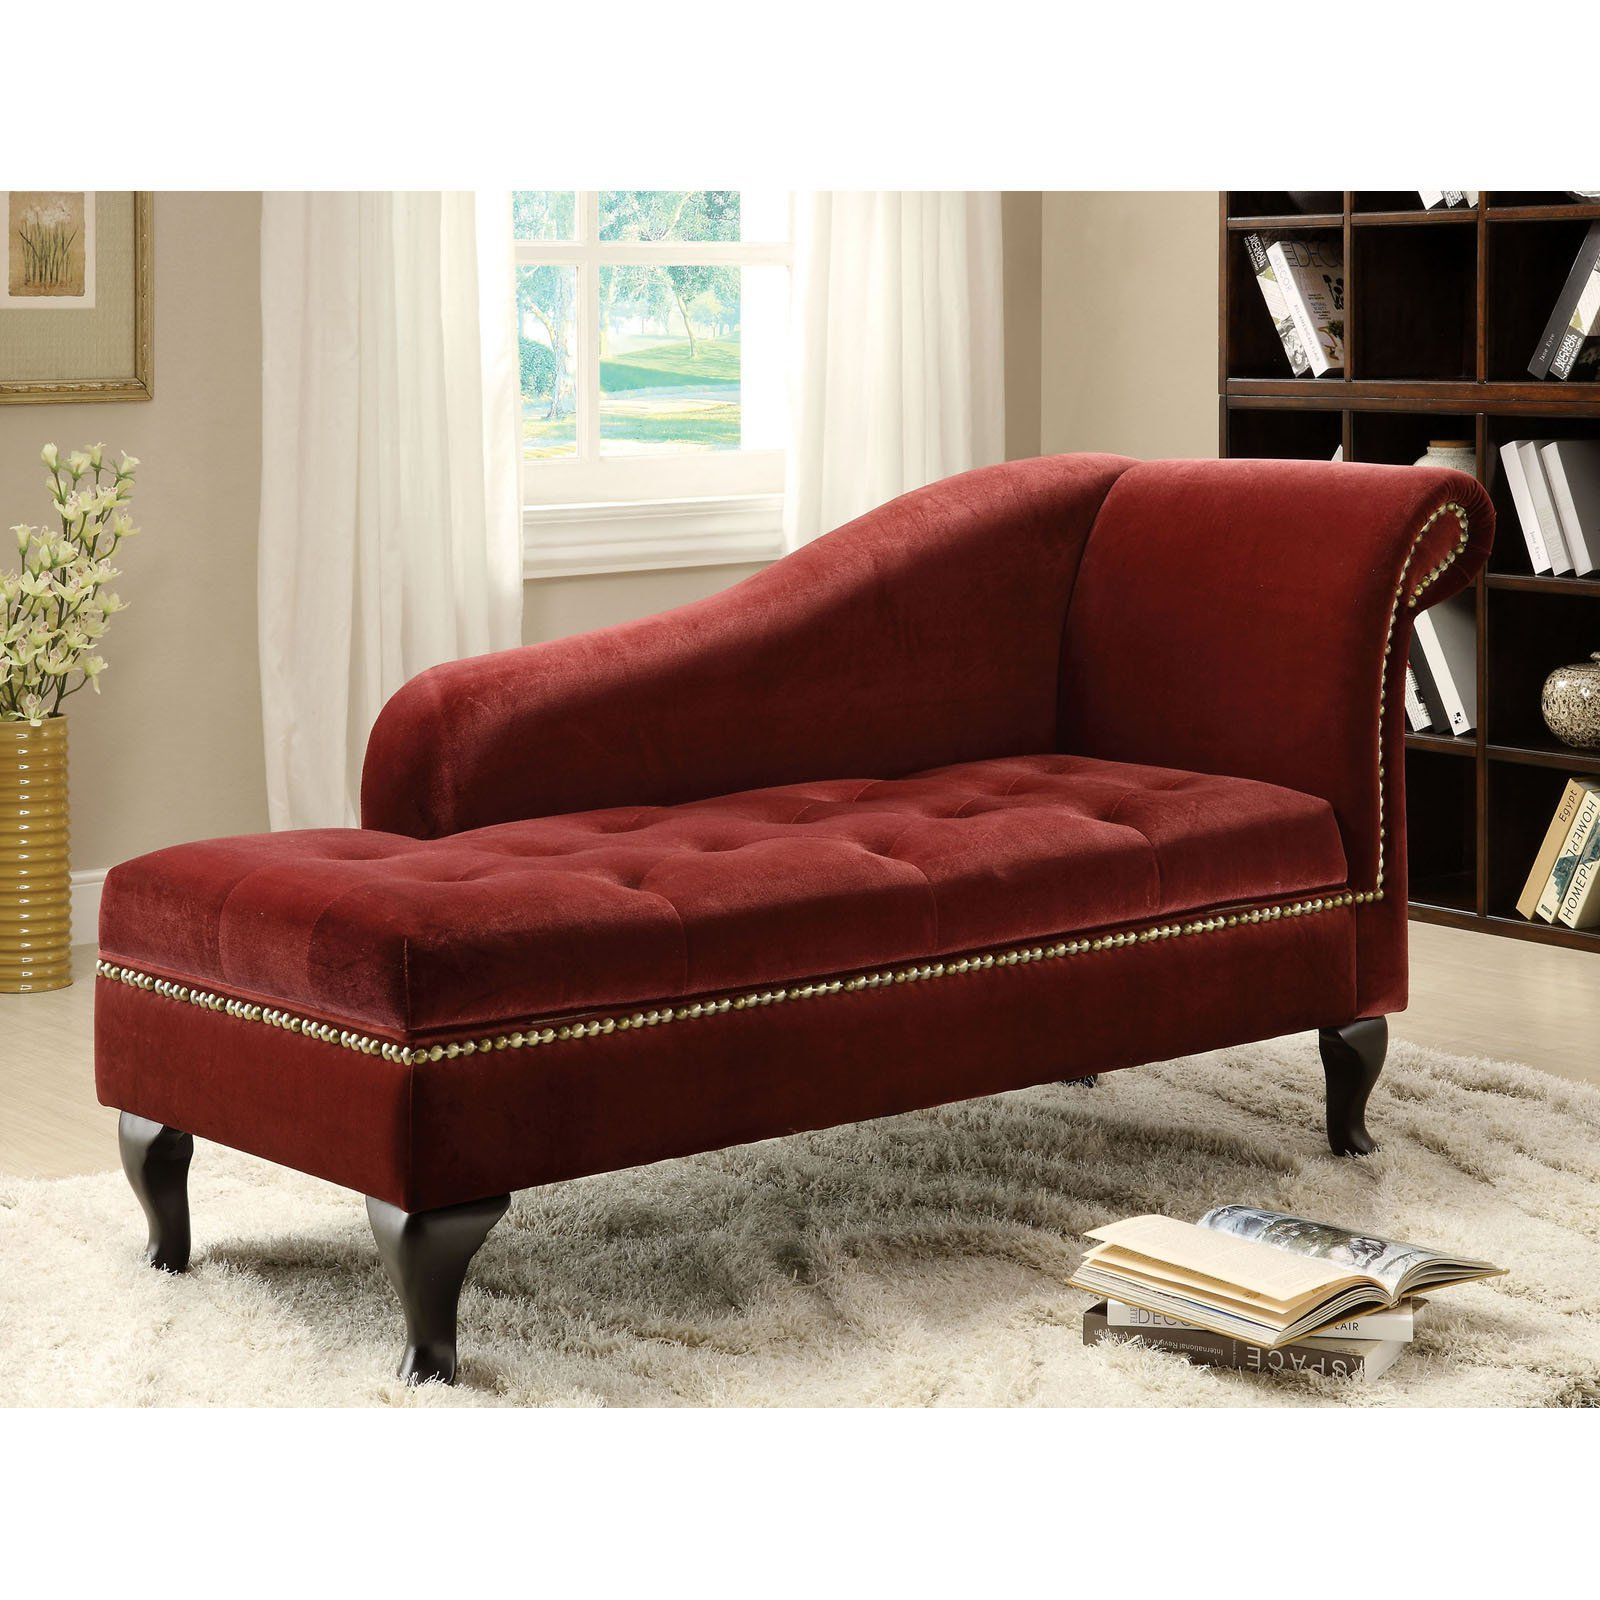 Furniture of America Visage Fabric Storage Chaise - Colonial Red ...